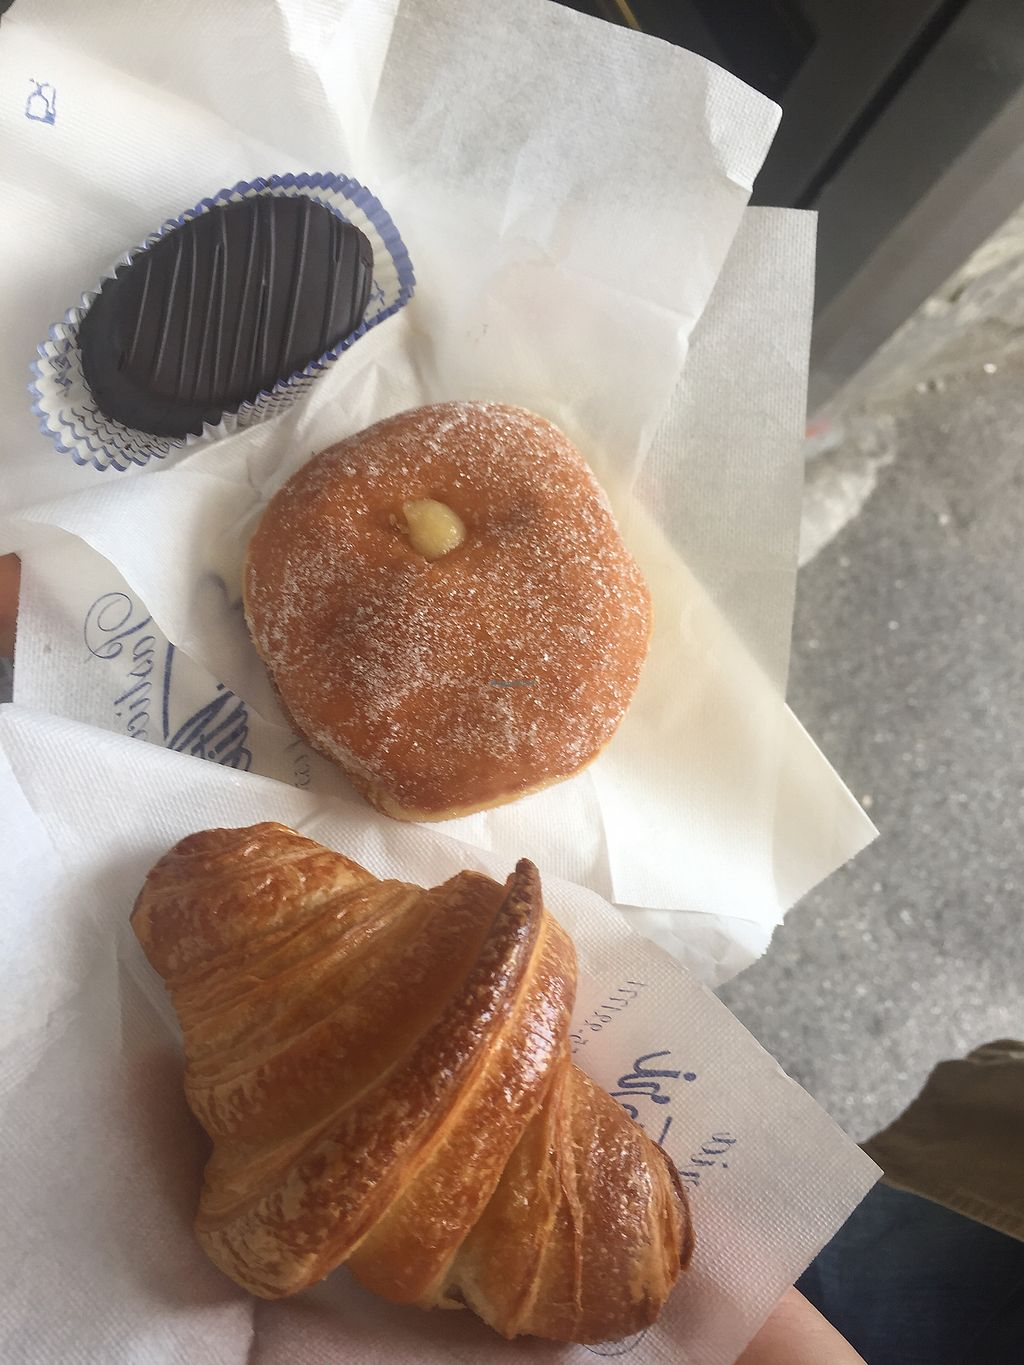 """Photo of Pasticceria Gualtieri  by <a href=""""/members/profile/comahony"""">comahony</a> <br/>Chocolate, cream filled pastry, croissant! All excellent! <br/> September 13, 2017  - <a href='/contact/abuse/image/60482/303927'>Report</a>"""